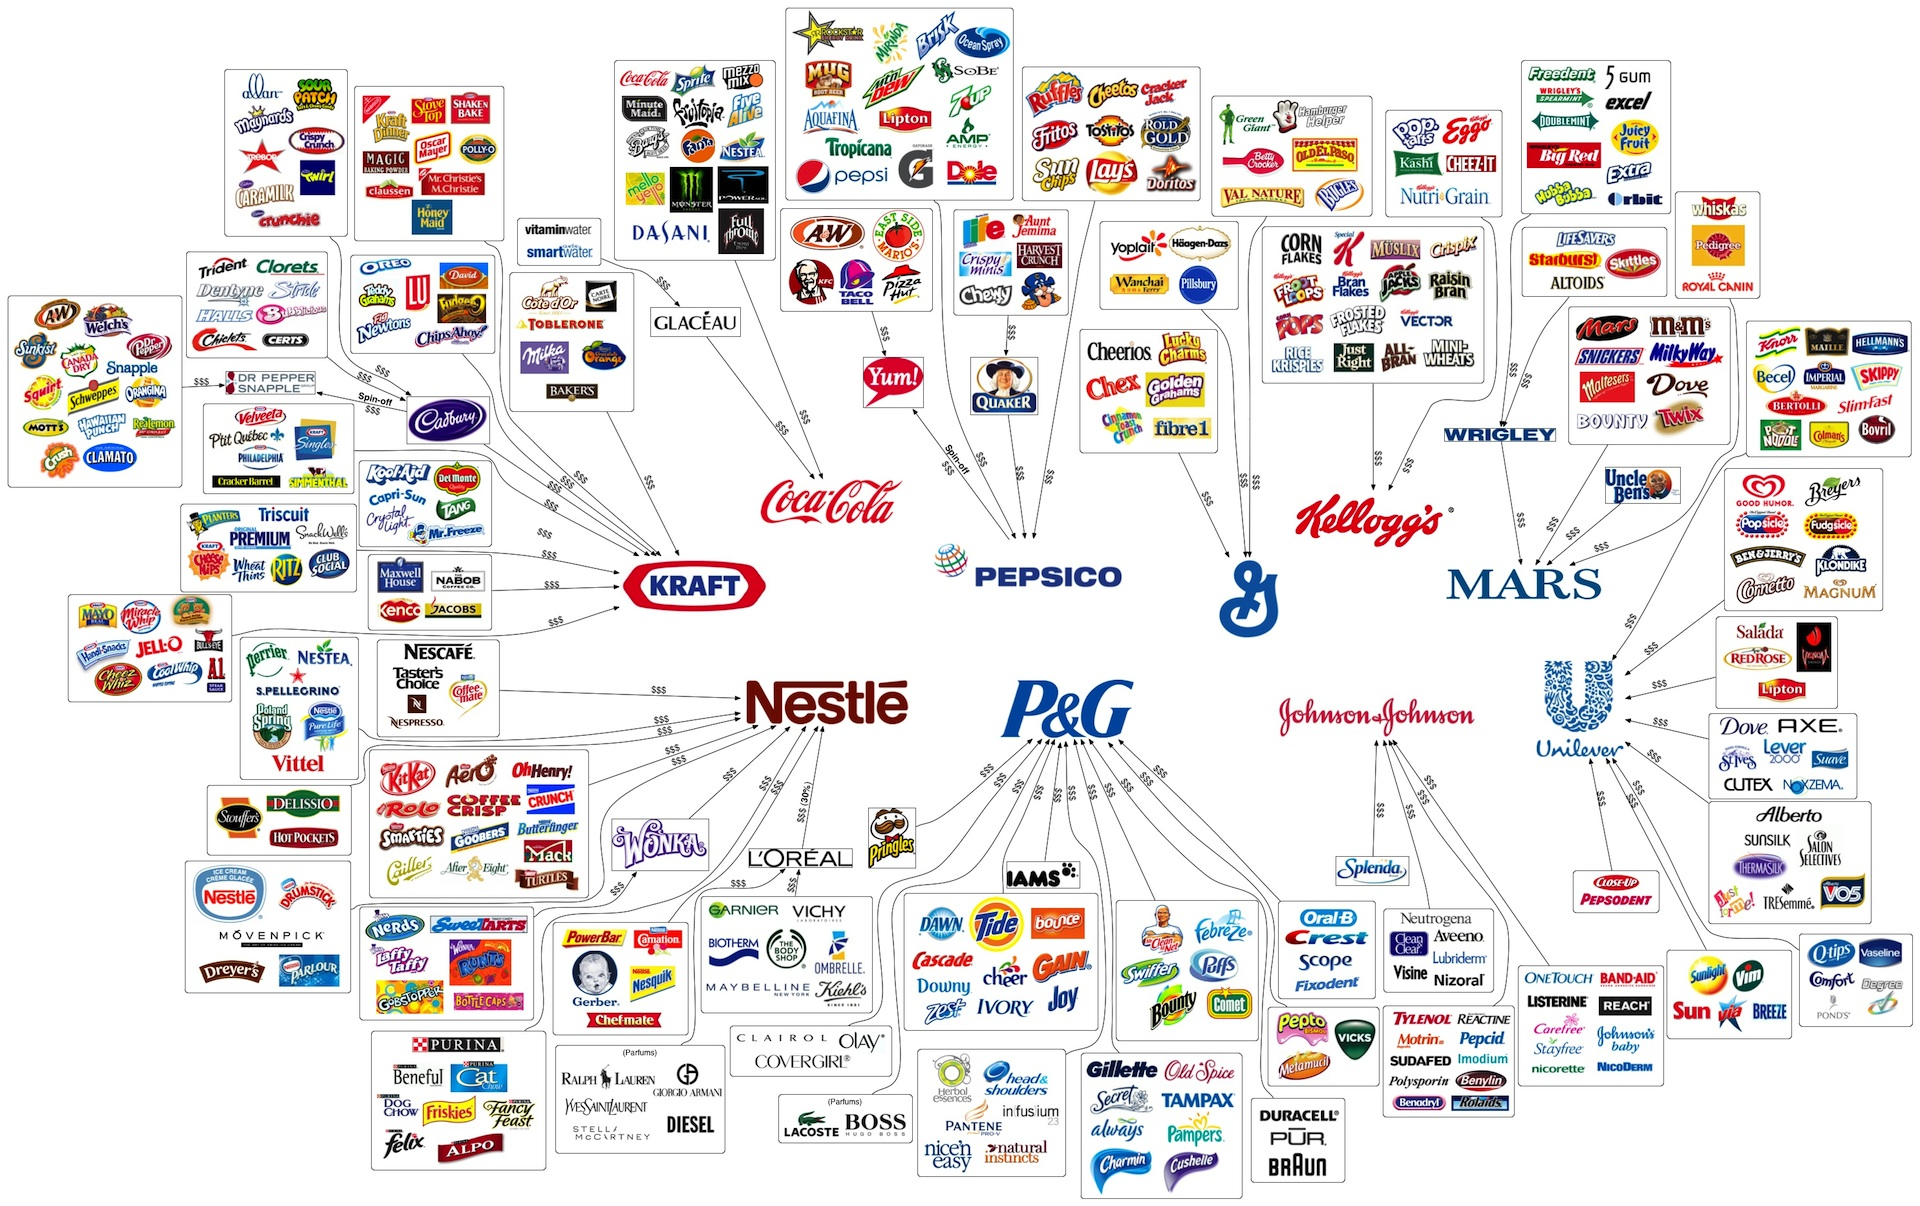 10-multinational-corporations-control-most-consumer-brands